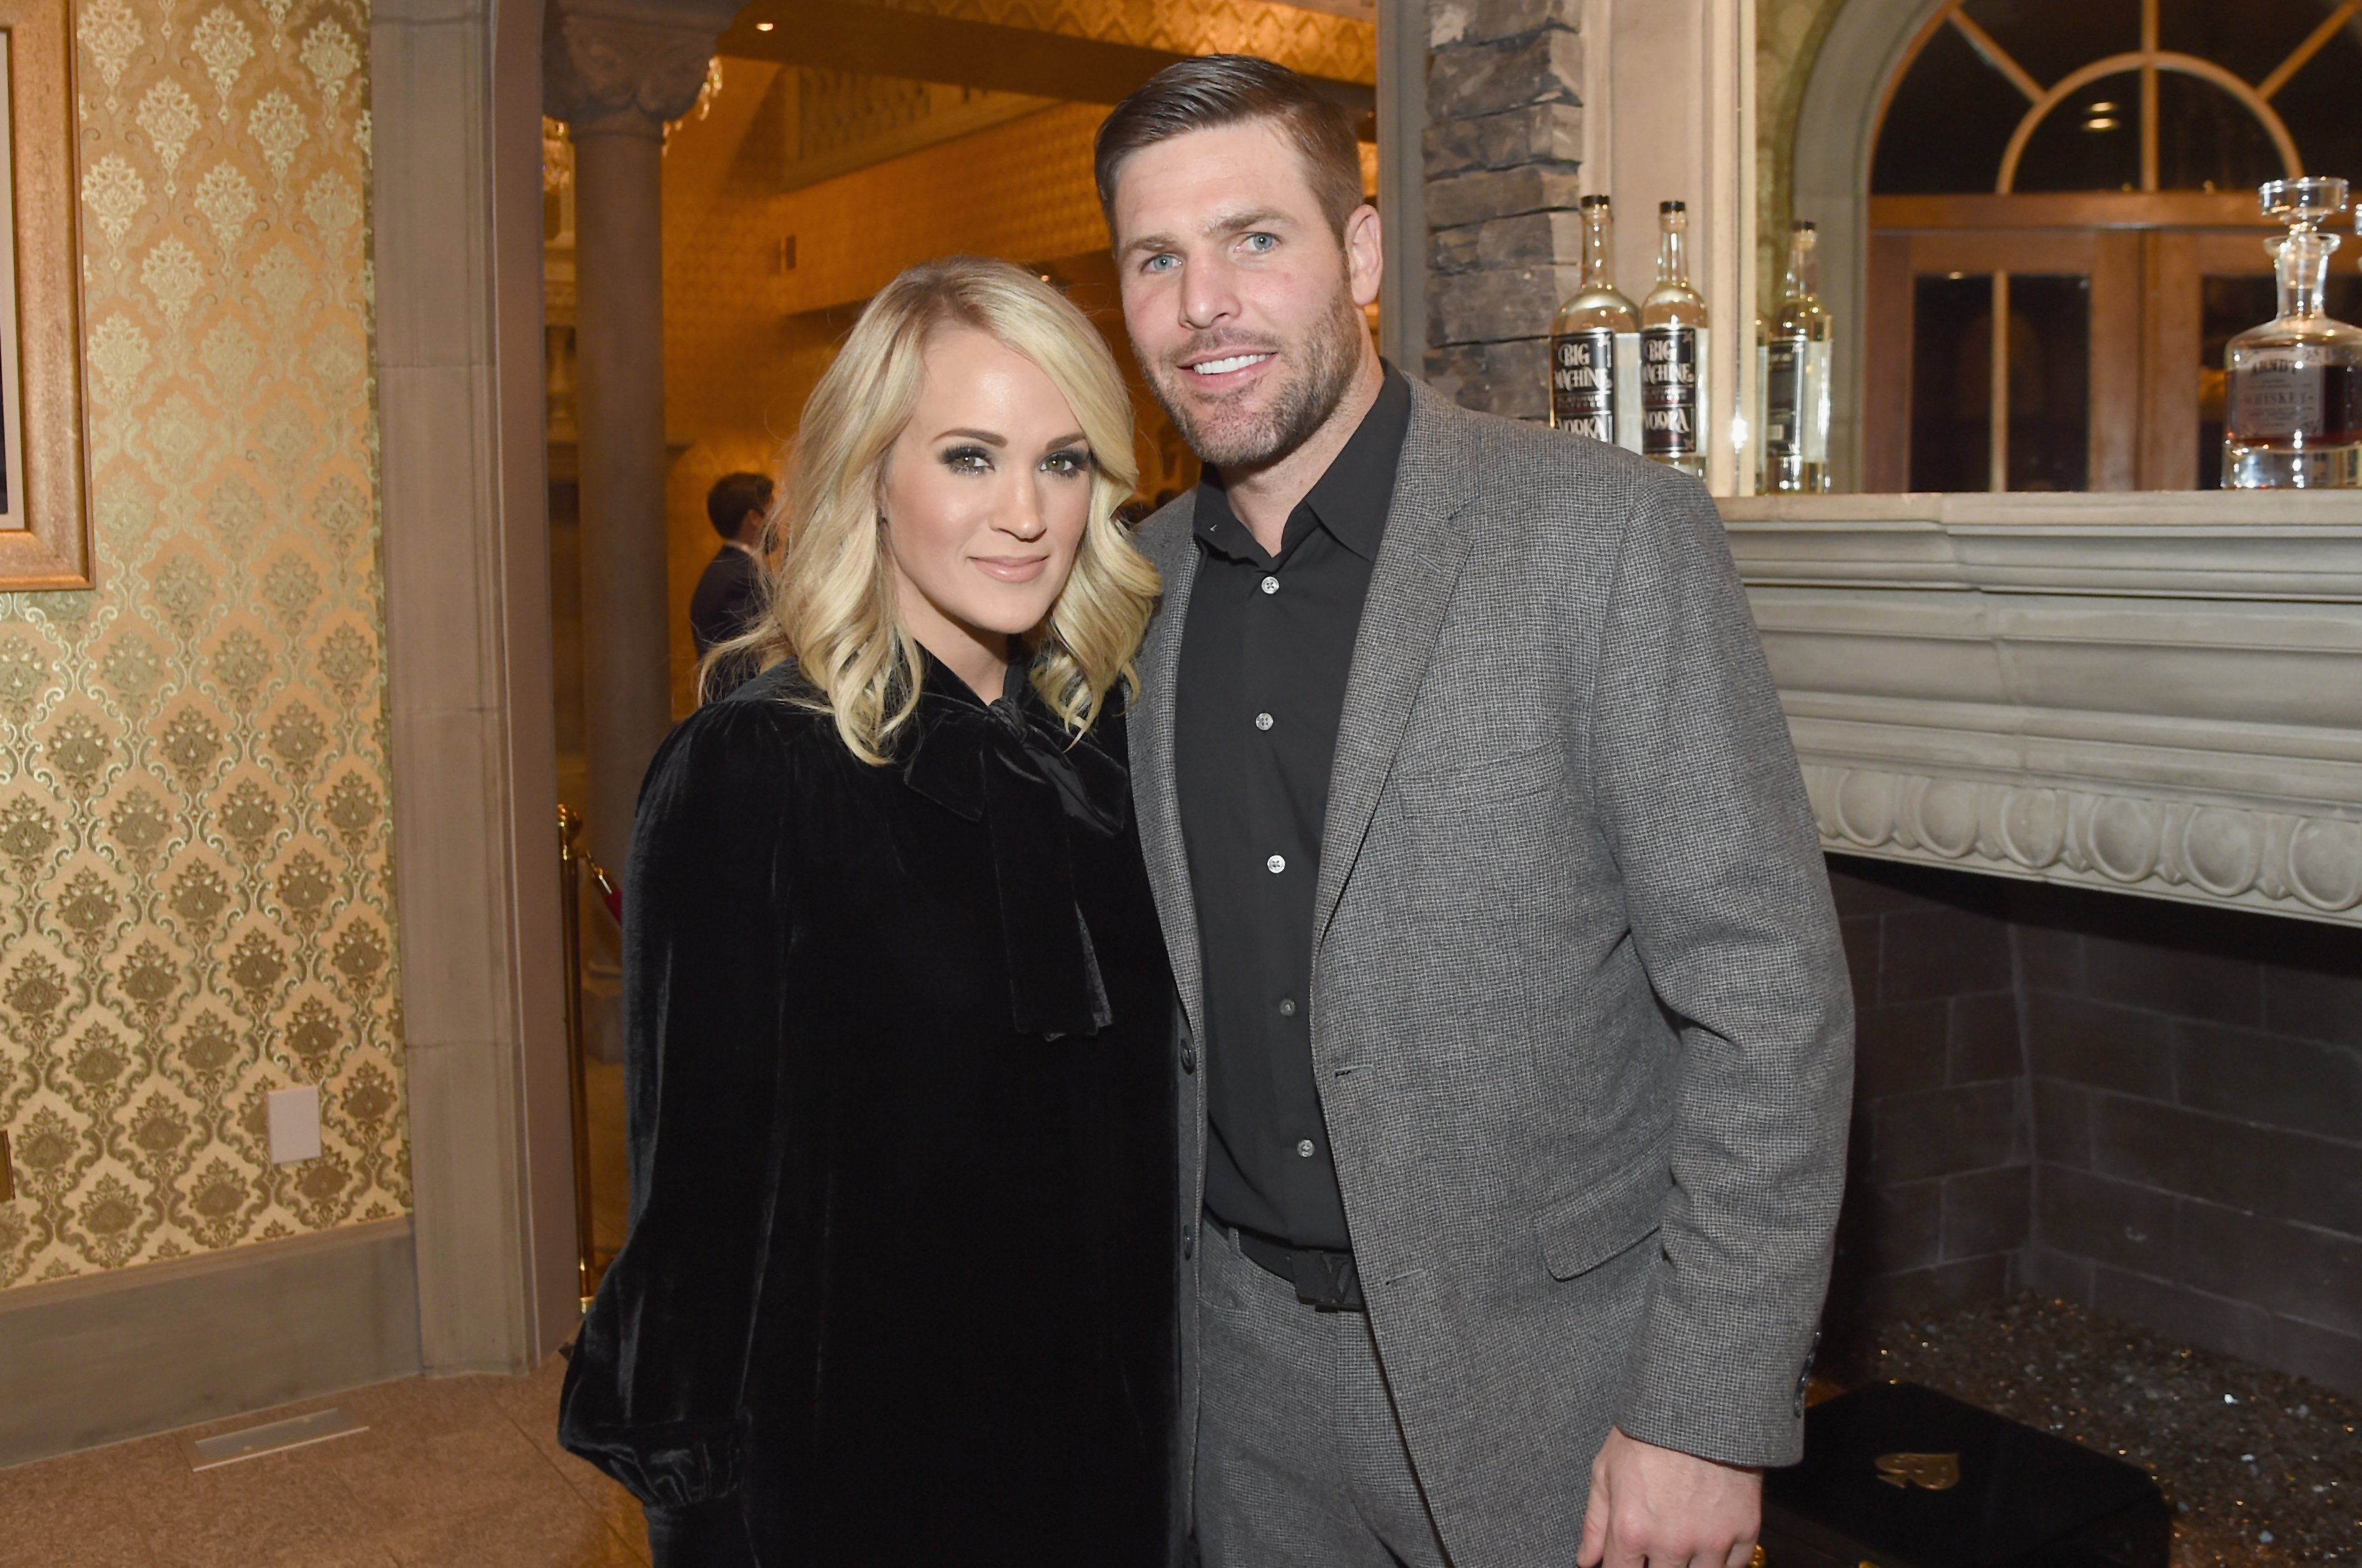 Singer-songwriter Carrie Underwood and NHL Player Mike Fisher attend Nashville Shines at the Arndt Estate on October 24, 2017 in Brentwood, Tennessee. | Source: Getty Images